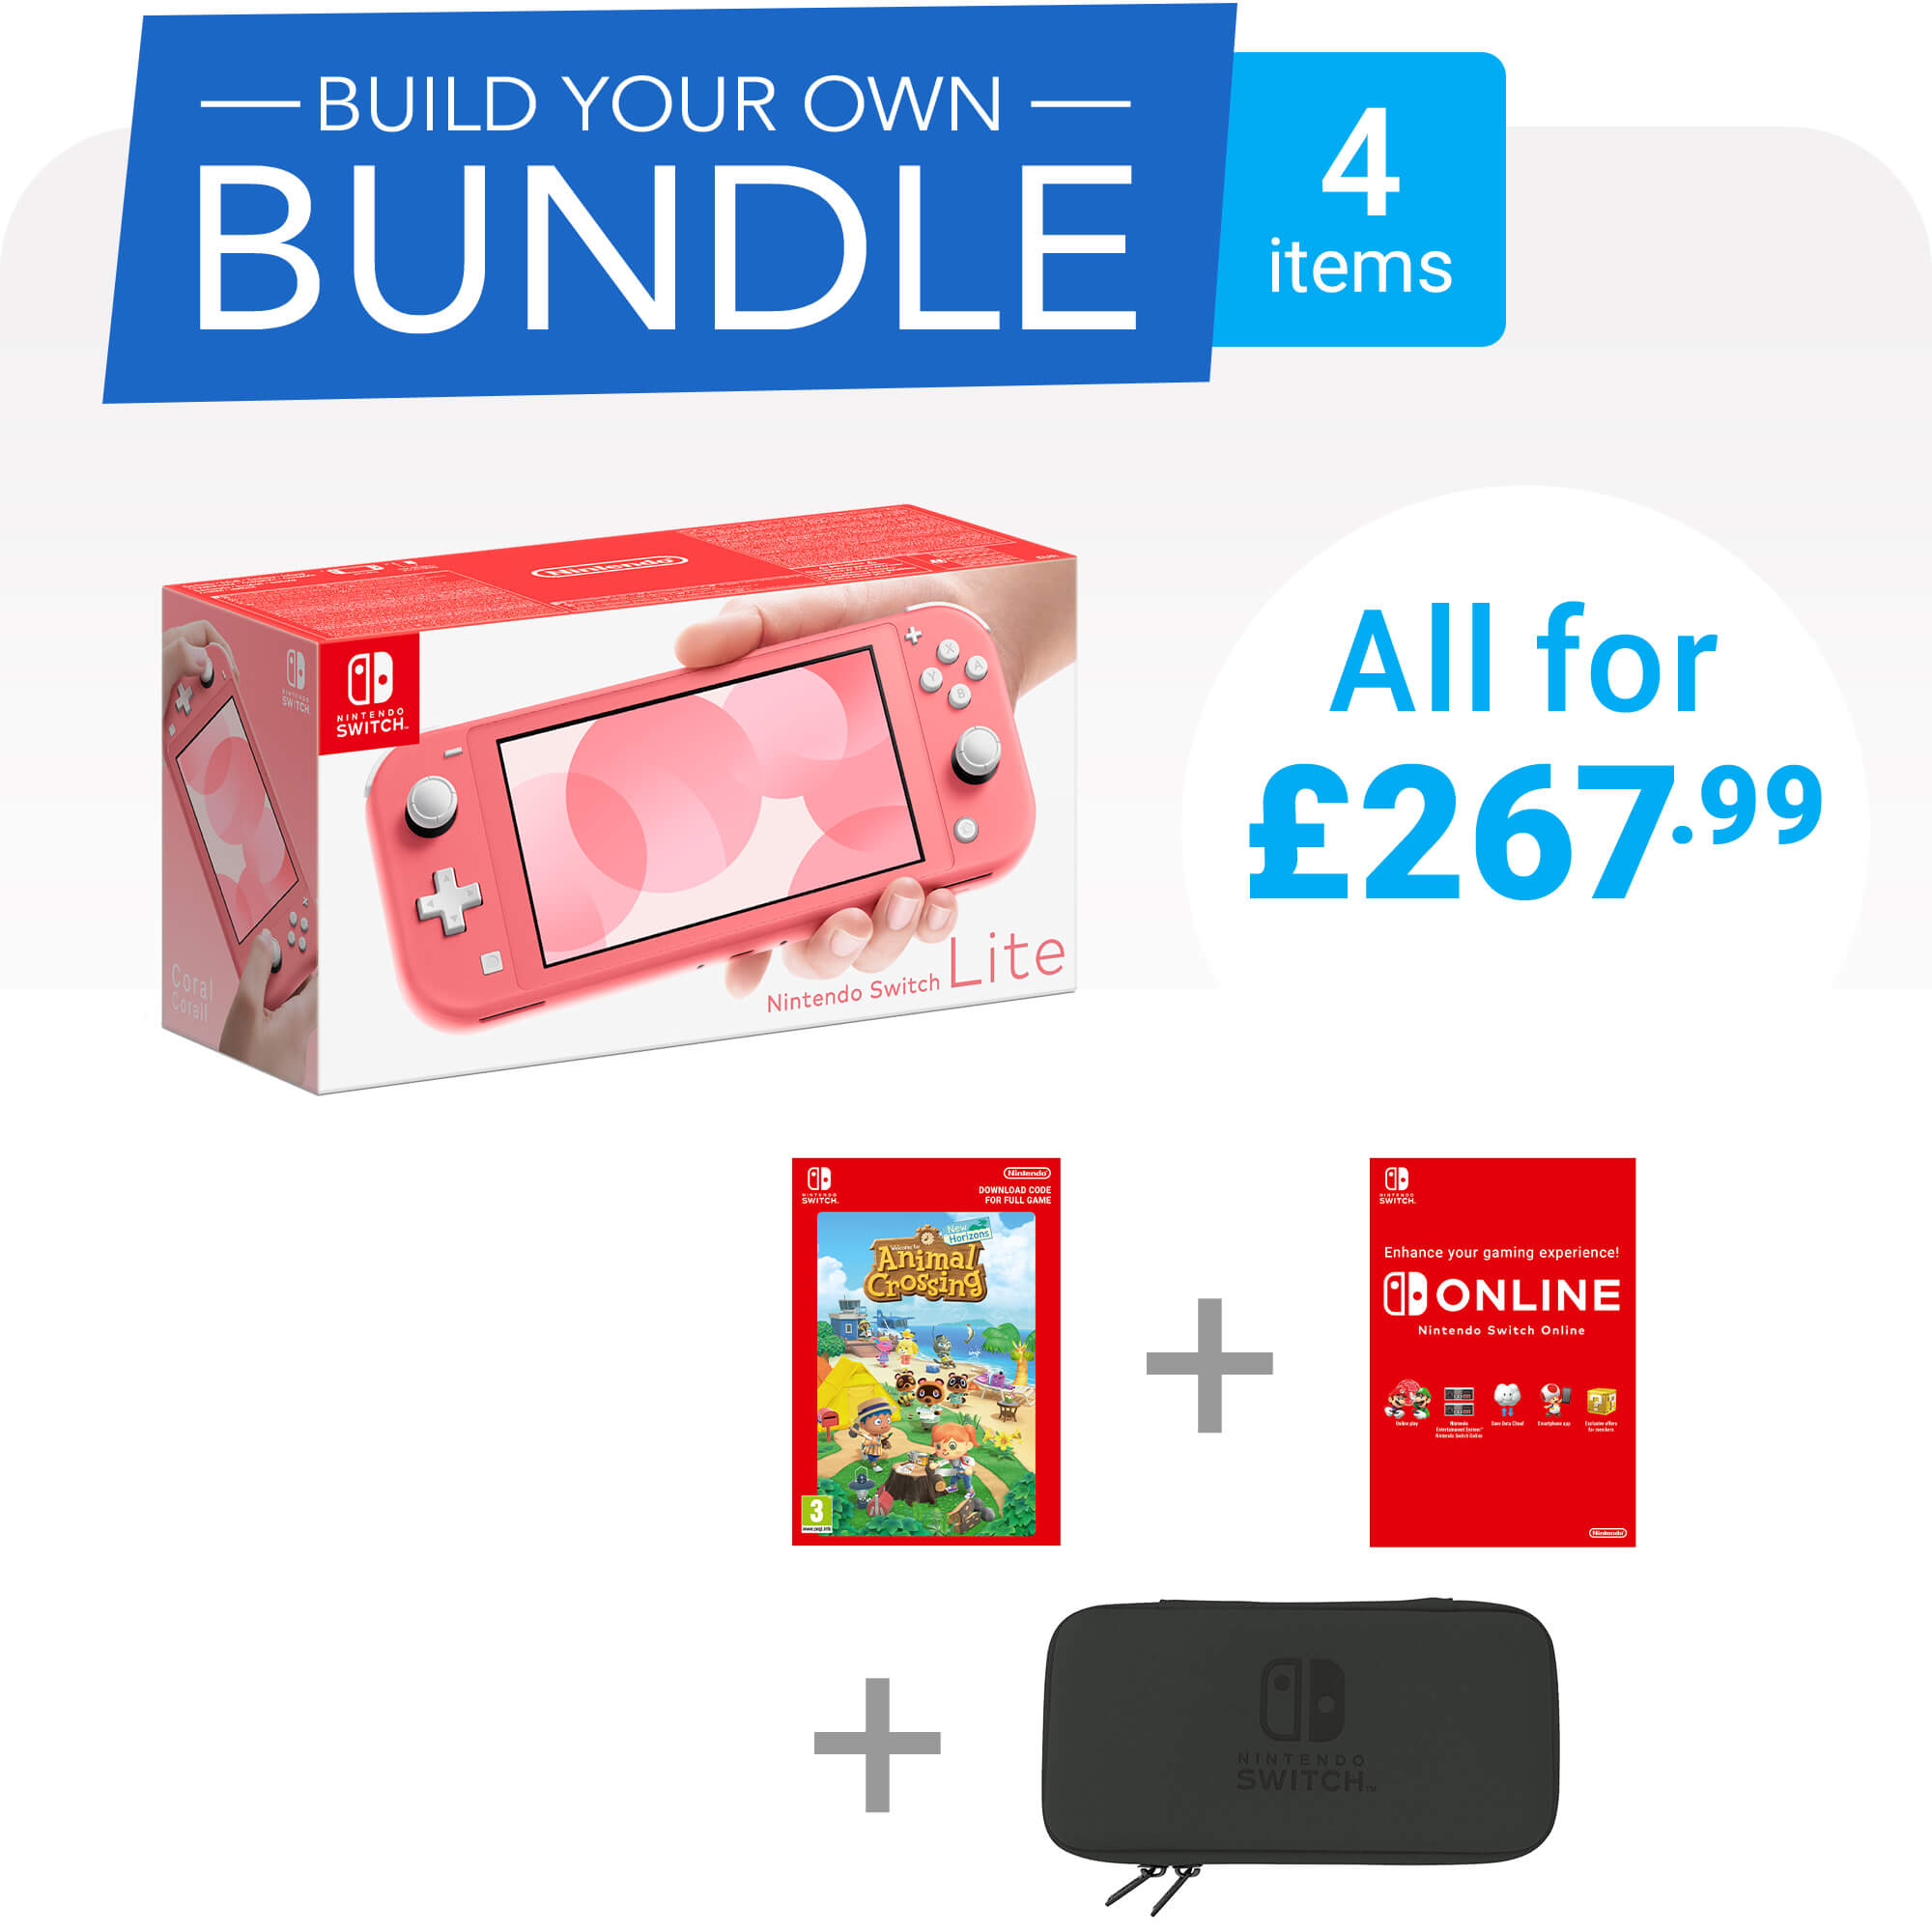 Build your own Nintendo Switch Lite bundle for only £267.99